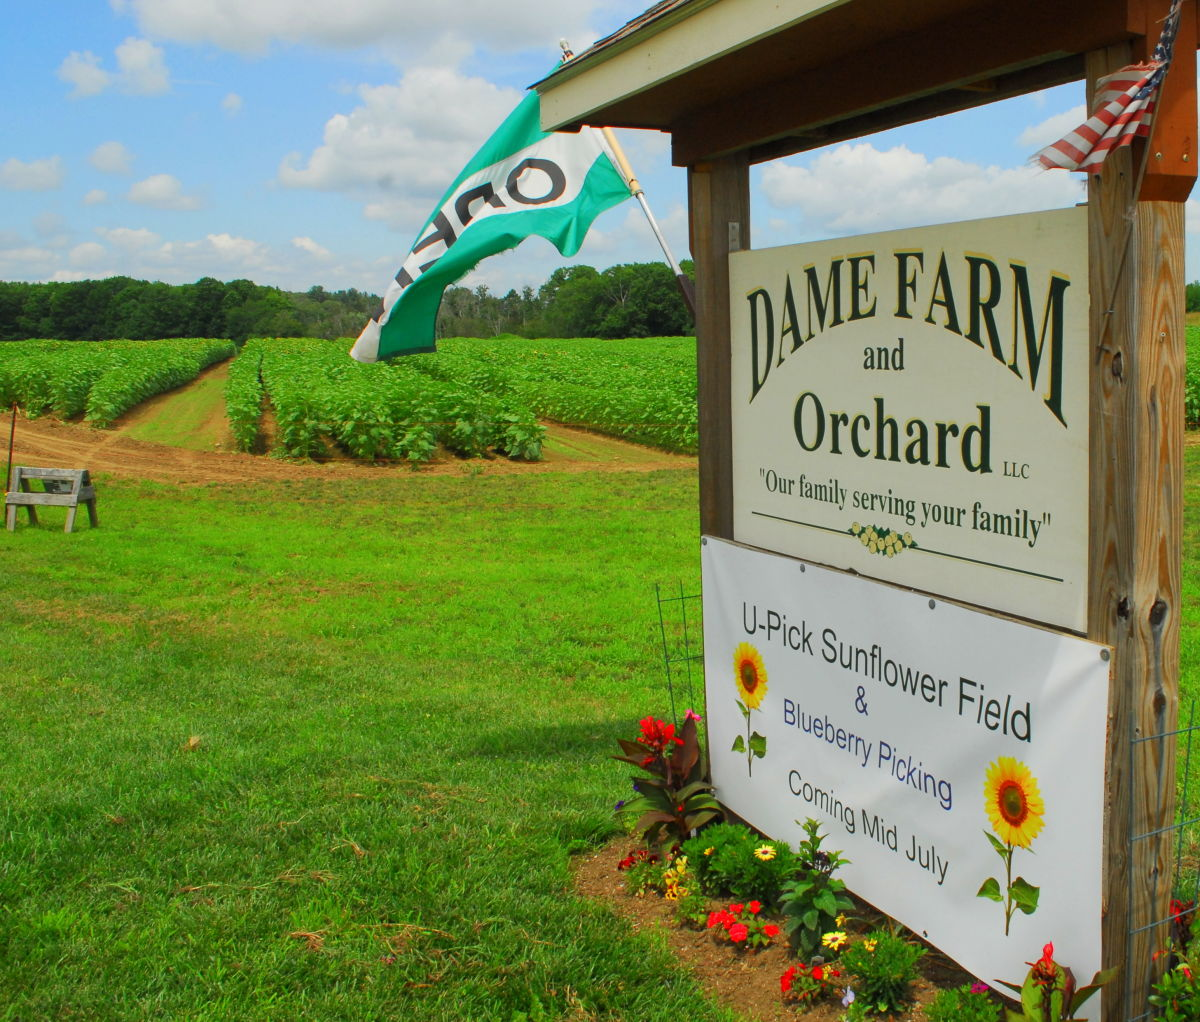 - Dame Farm And Orchard